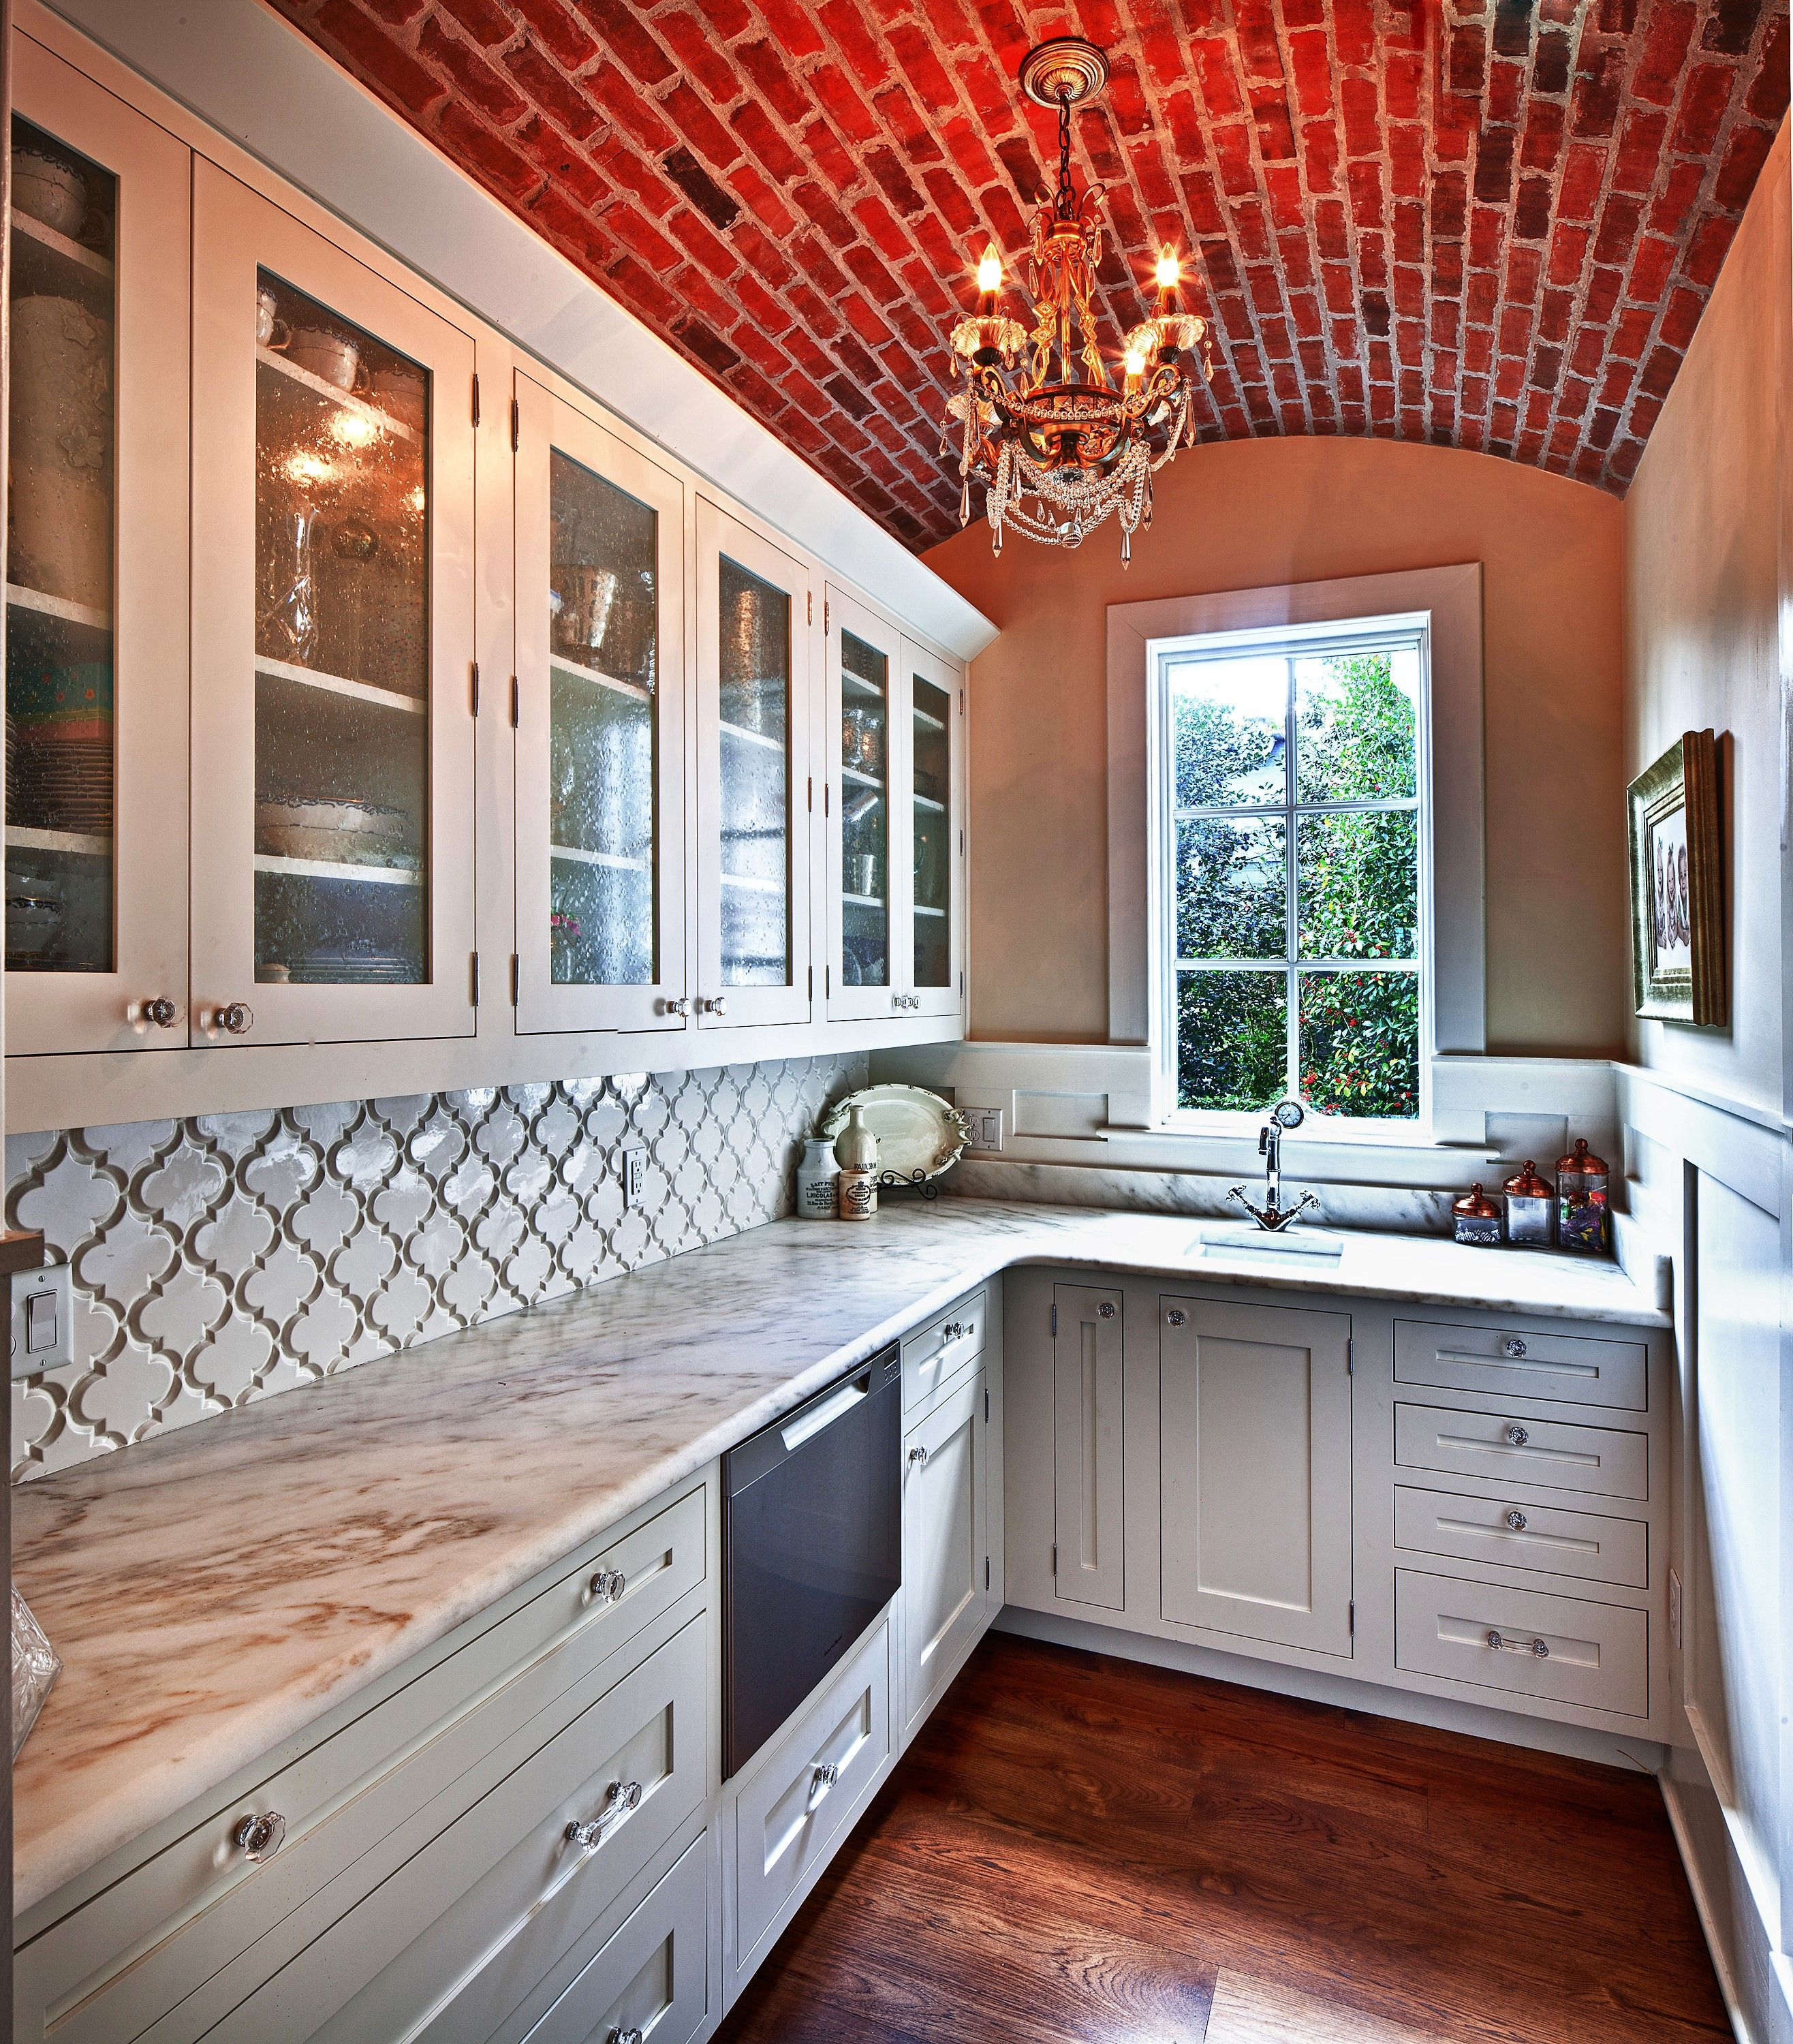 When Looking For Design Inspiration, Go No Further Than Monarch Kitchen And  Bath In Orlando, FL